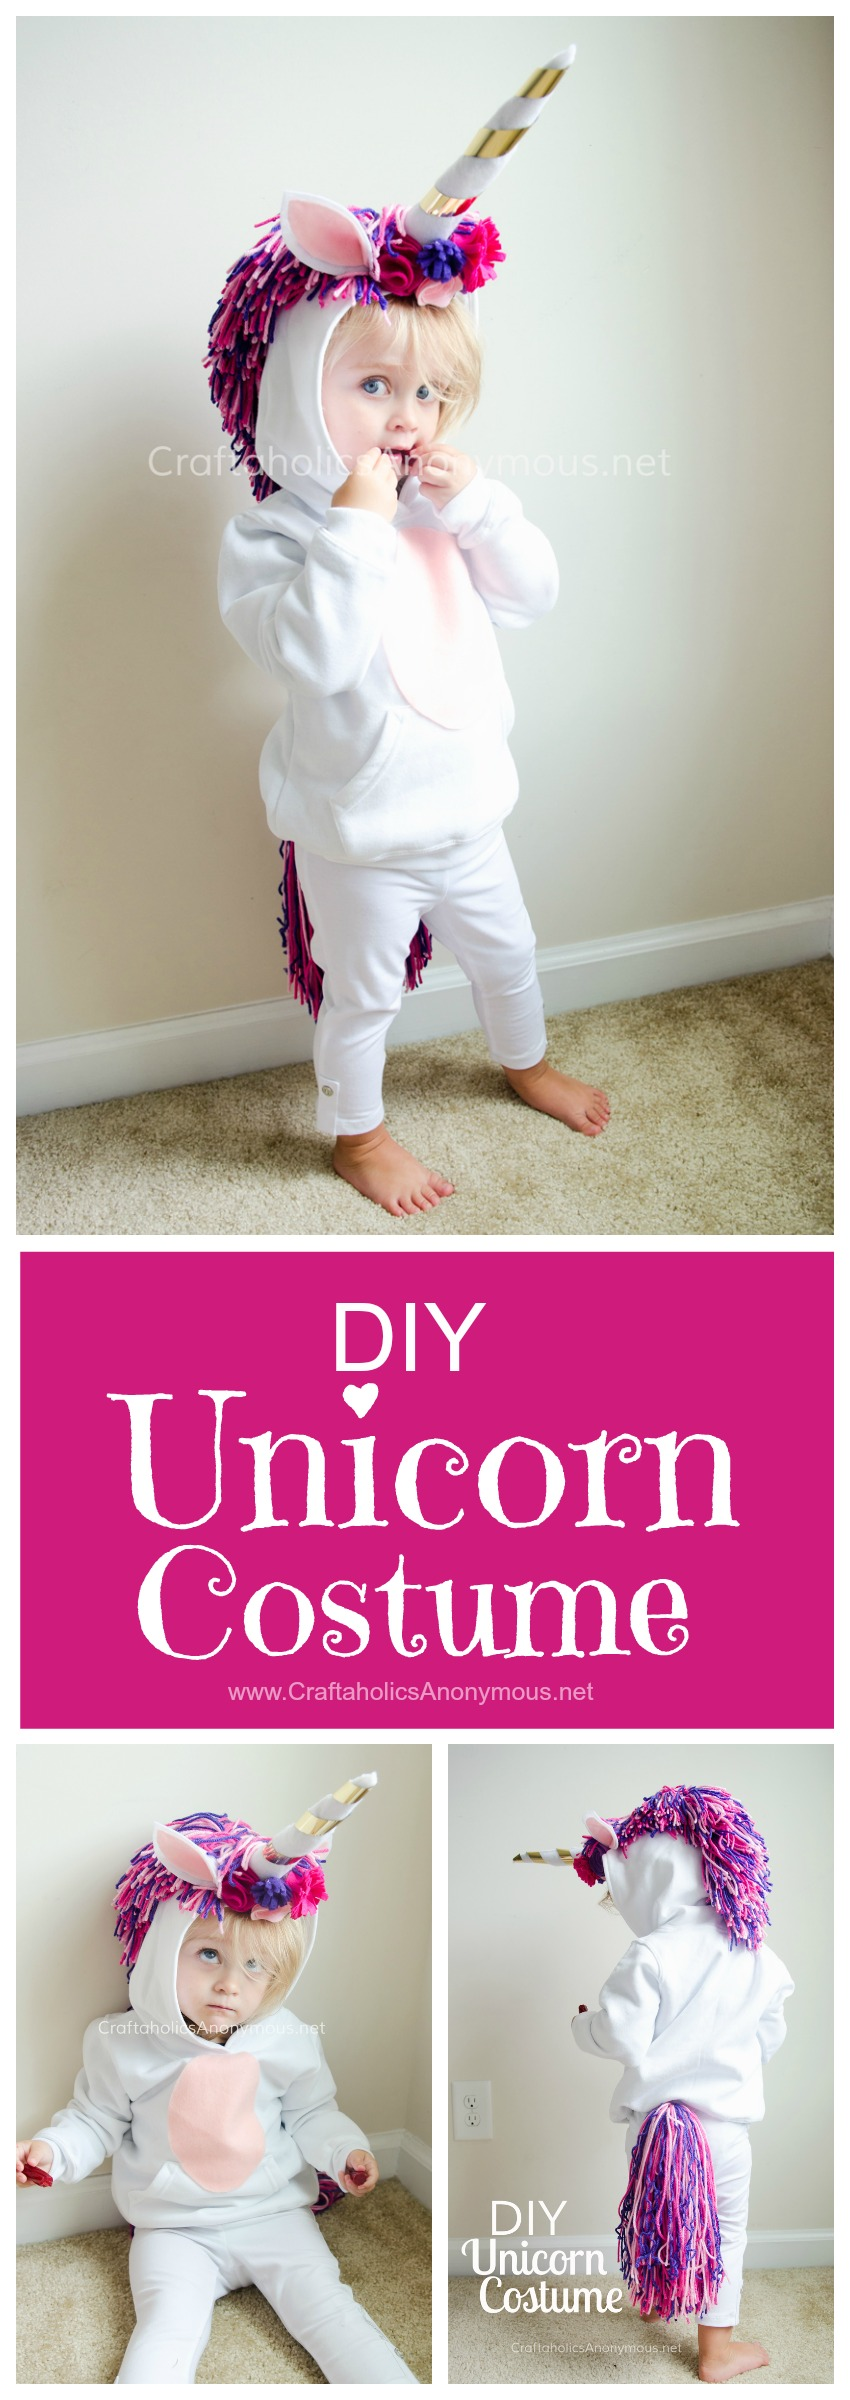 Unicorn-Costume-DIY-collage